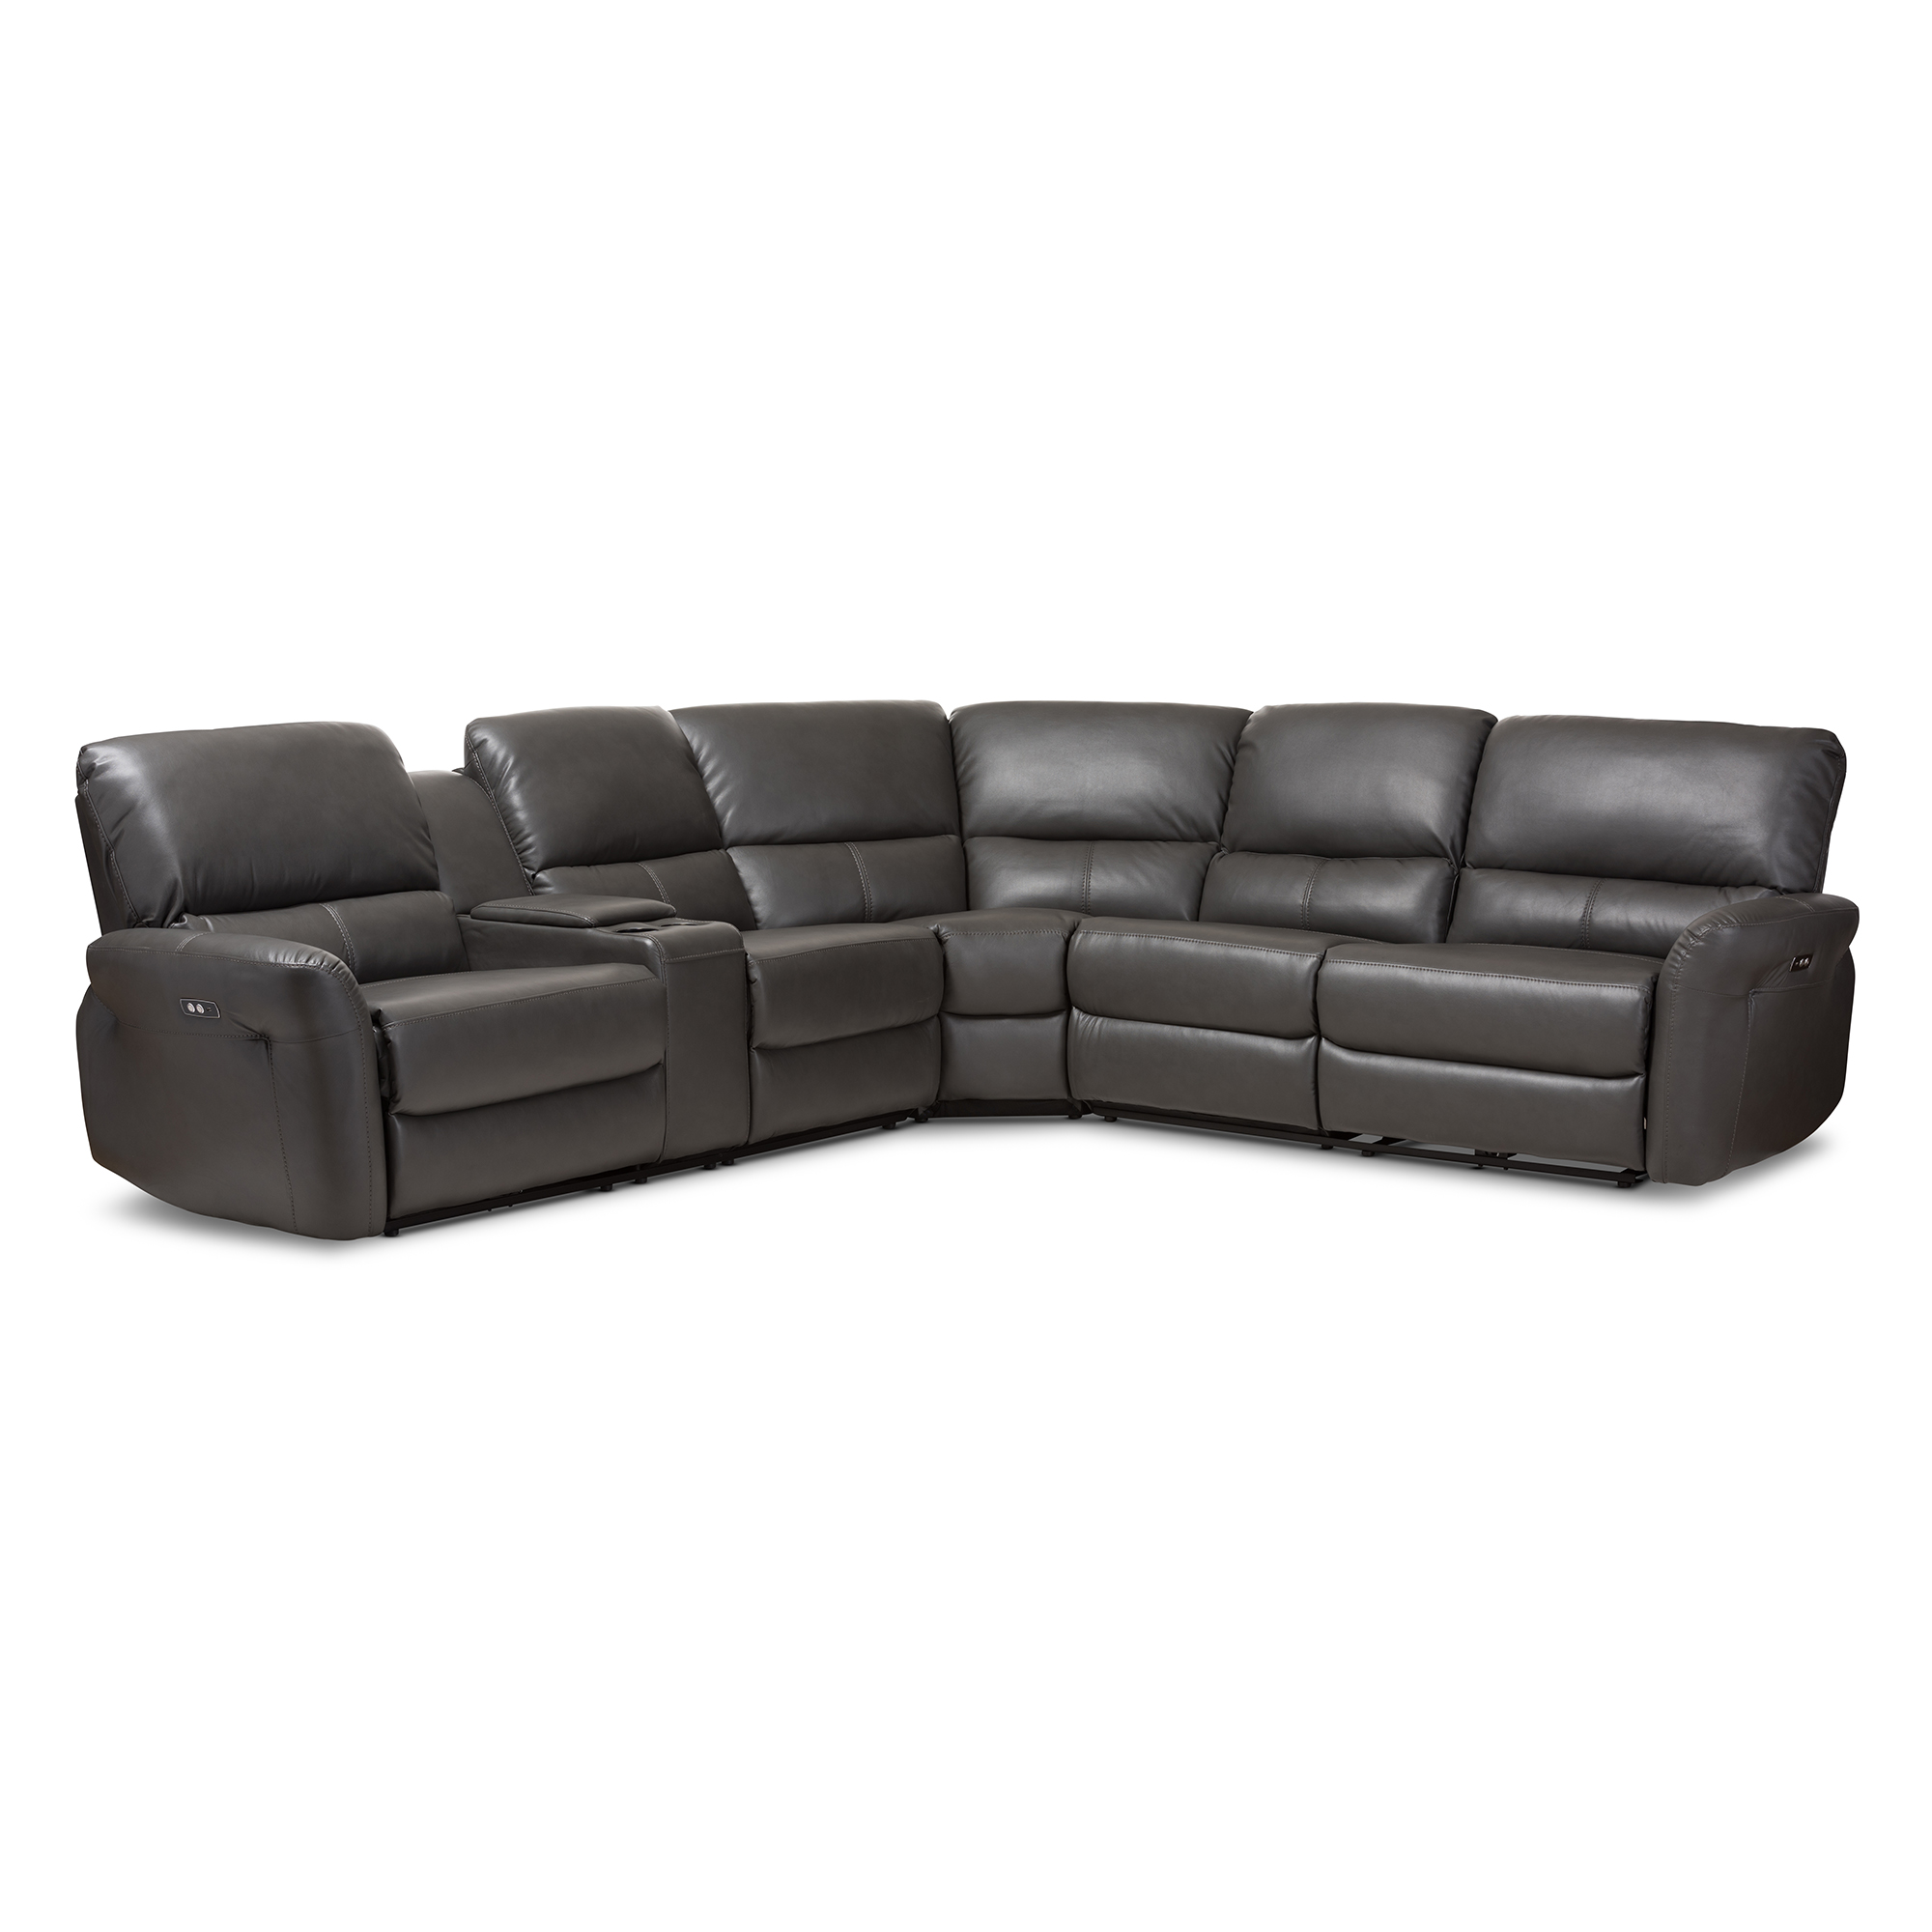 Baxton Studio Amaris Modern and Contemporary Grey Bonded Leather 5-Piece Power Reclining Sectional Sofa  sc 1 st  Wholesale Interiors : wholesale leather sectionals - Sectionals, Sofas & Couches